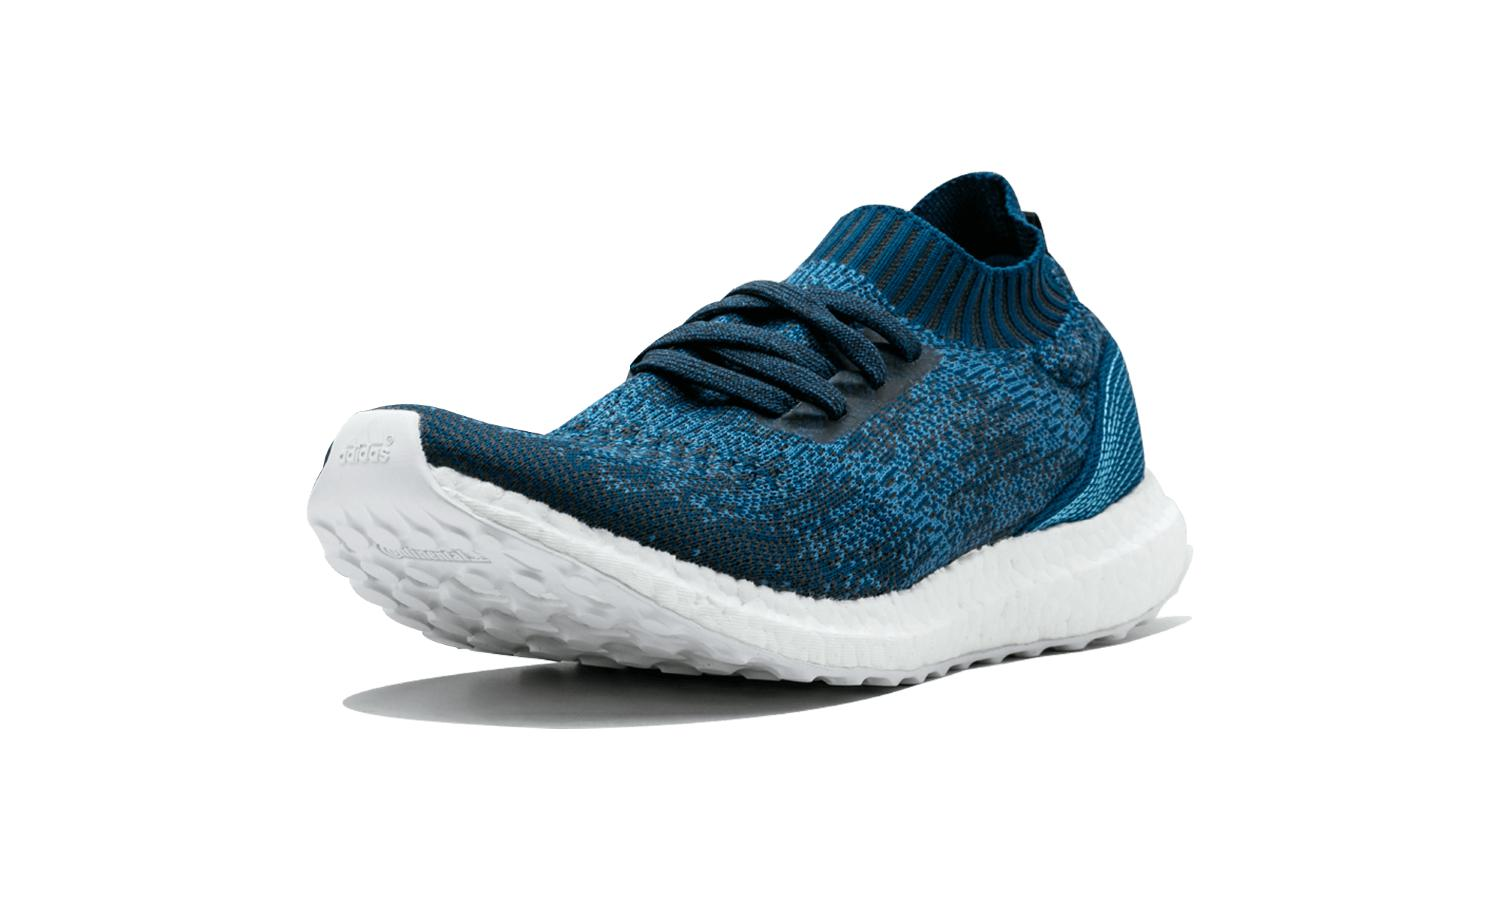 finest selection e257b 03c5a ... low price lyst adidas ultraboost uncaged parley by3057 in blue for men  ec935 aad1b